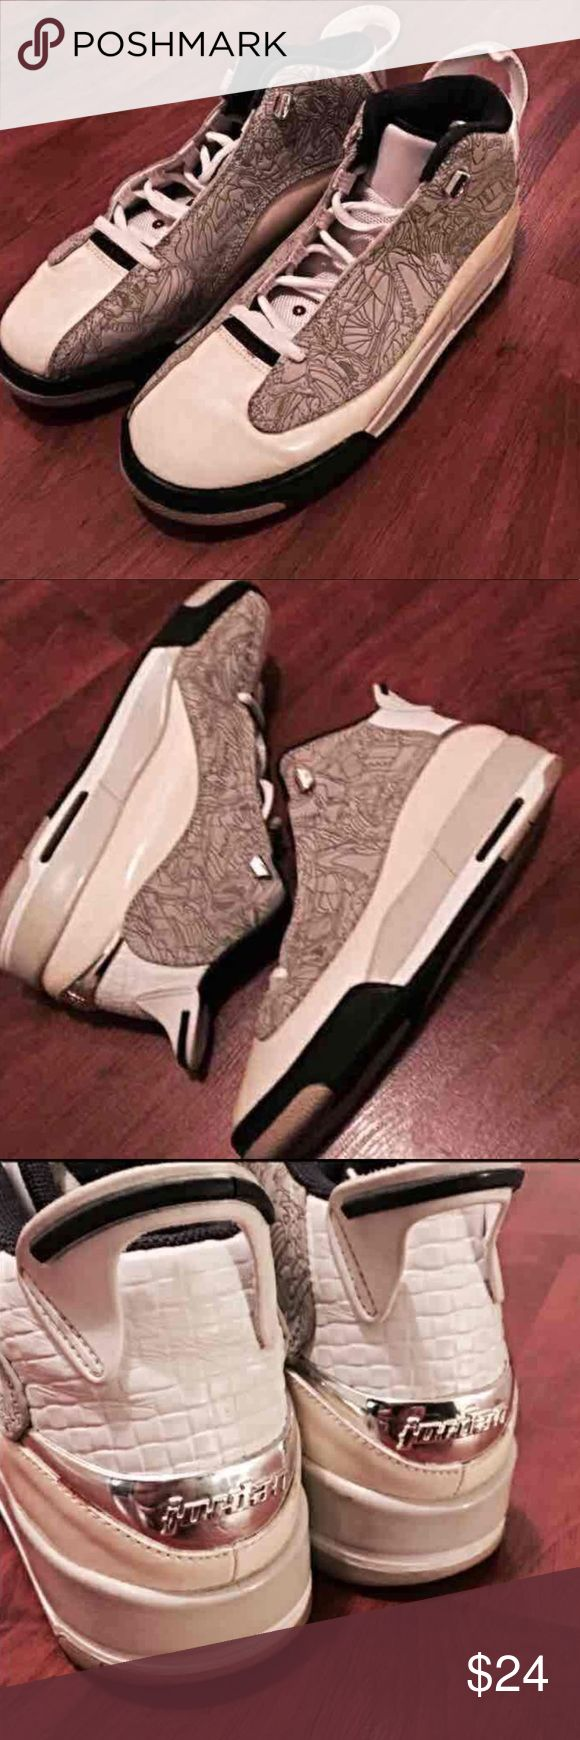 Old Skool AIR JORDAN Dub Zero - 7Y Size 7Y Great except missing one of the top metal lace rivets on left shoe but not too noticeable (see pics) Nike Shoes Sneakers